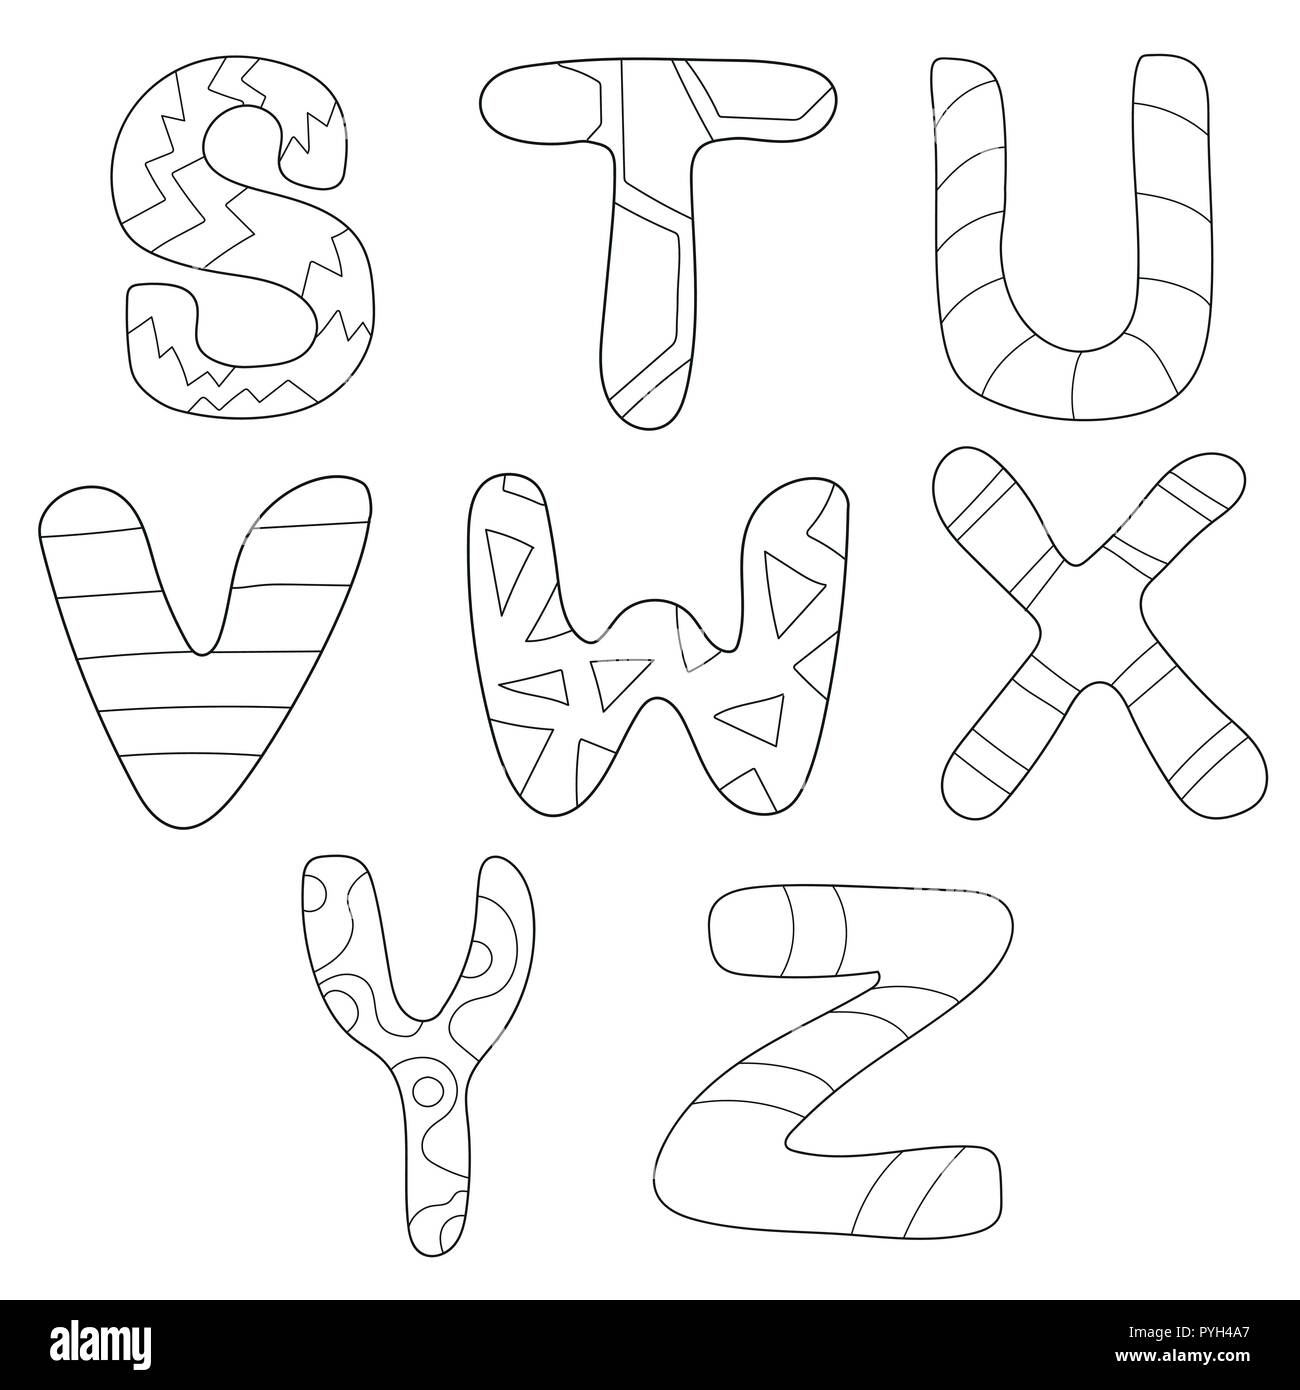 Cartoon Alphabet Coloring Book Or Page Set For Children Education - Coloring-book-fun